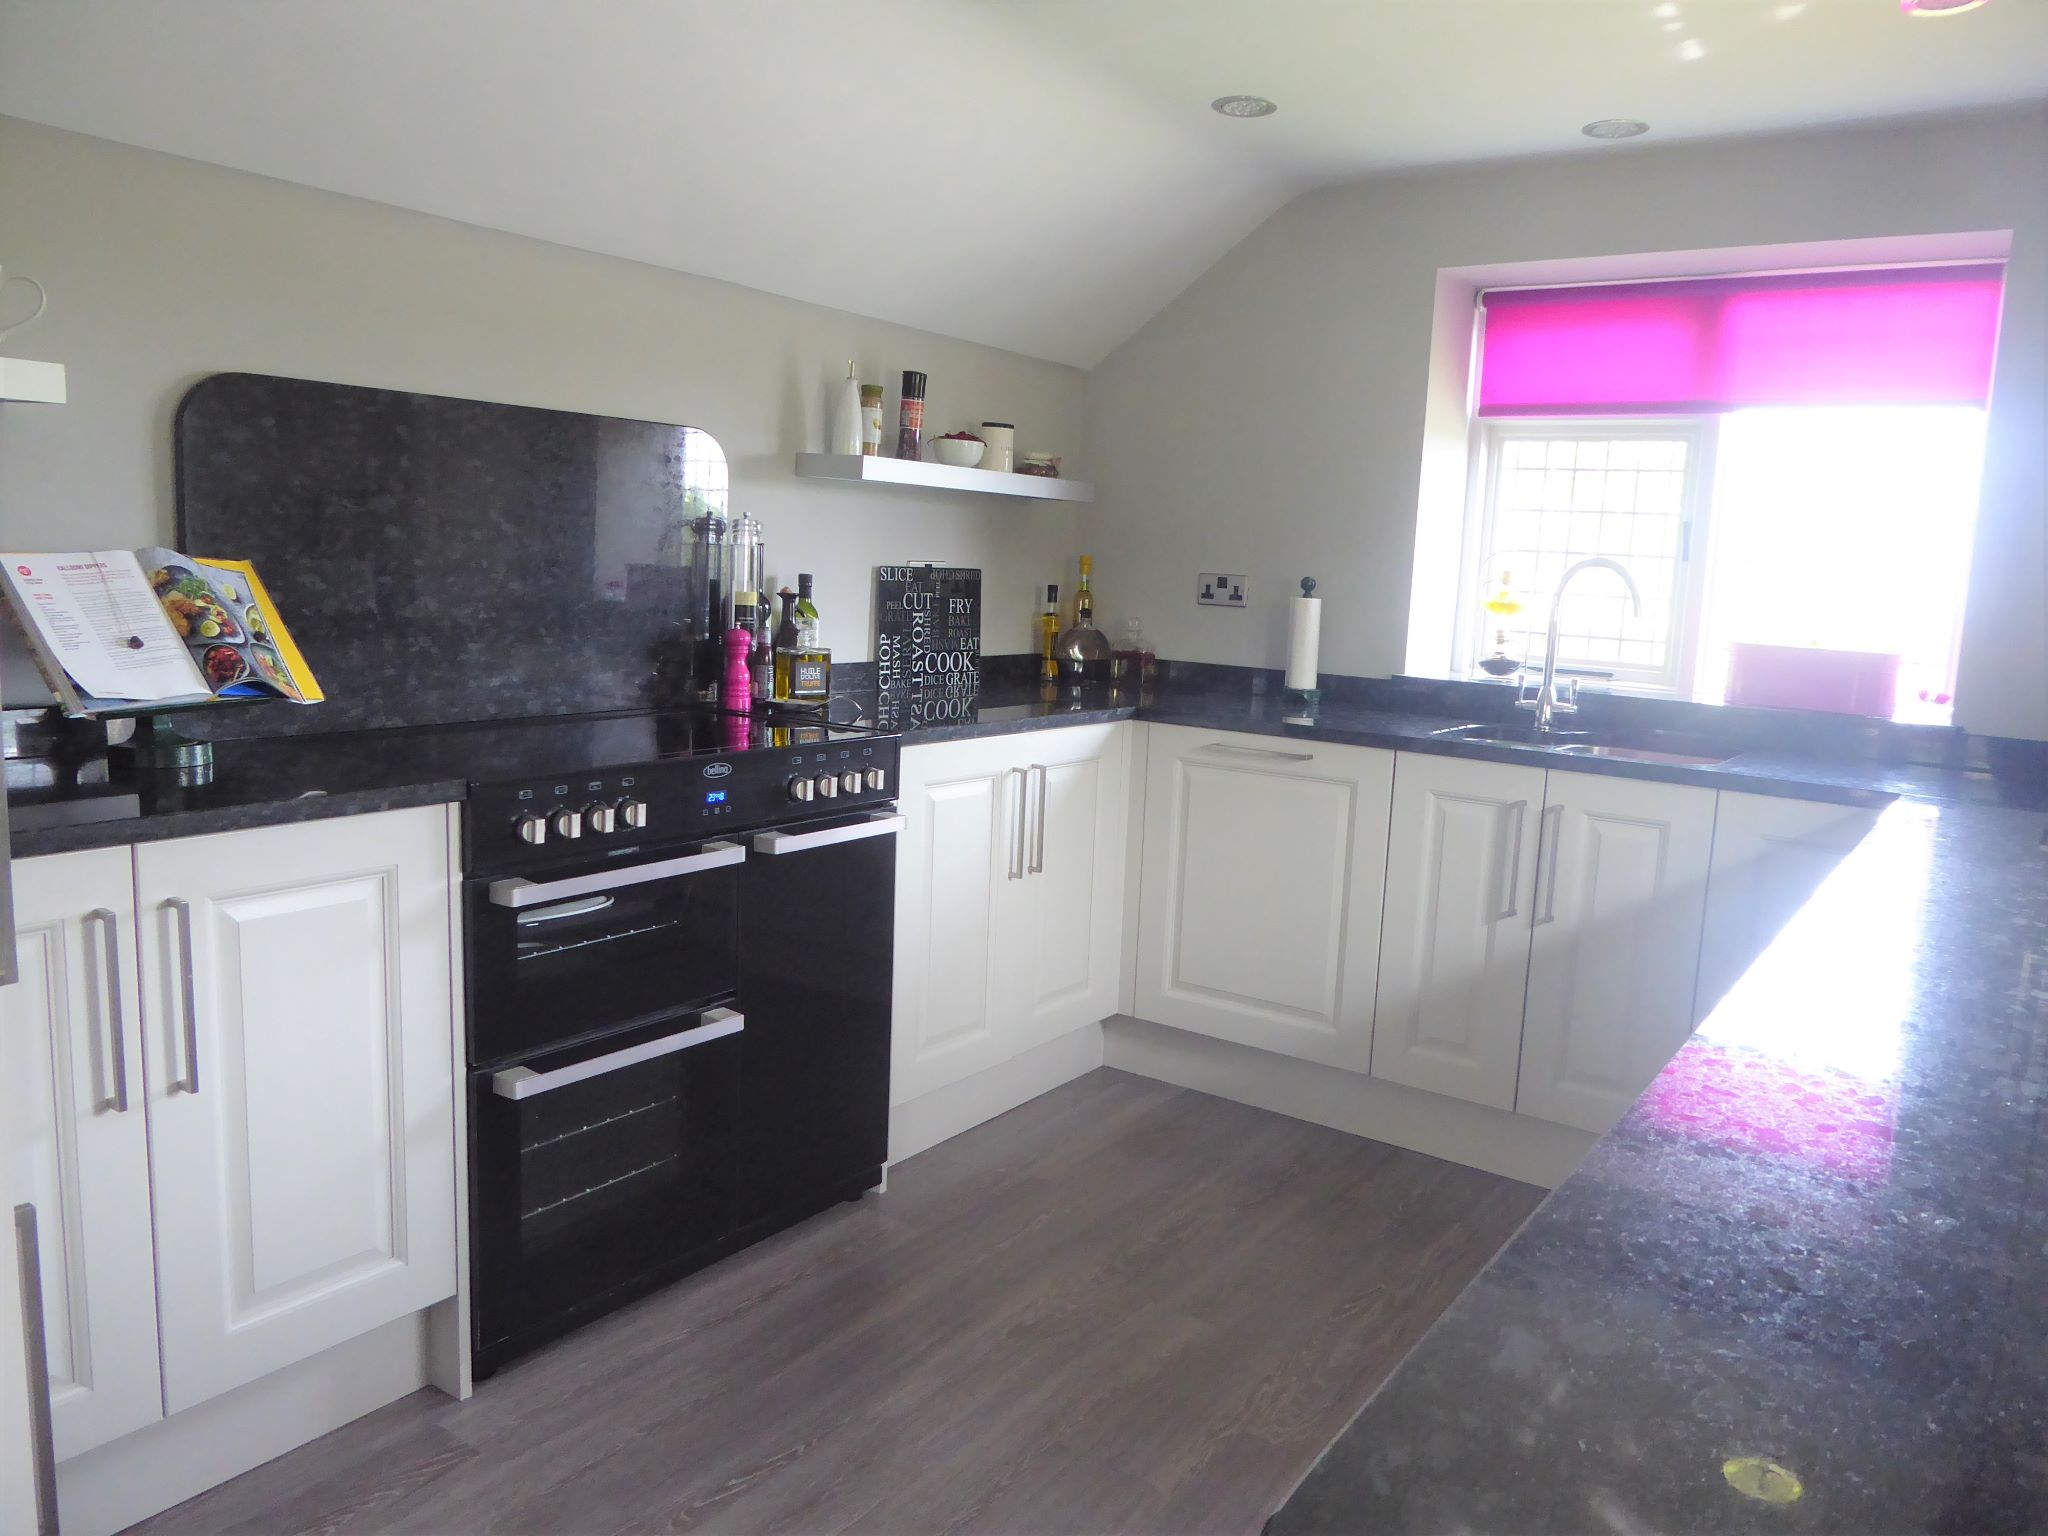 2 bedroom cottage house SSTC in Abergele - Photograph 9